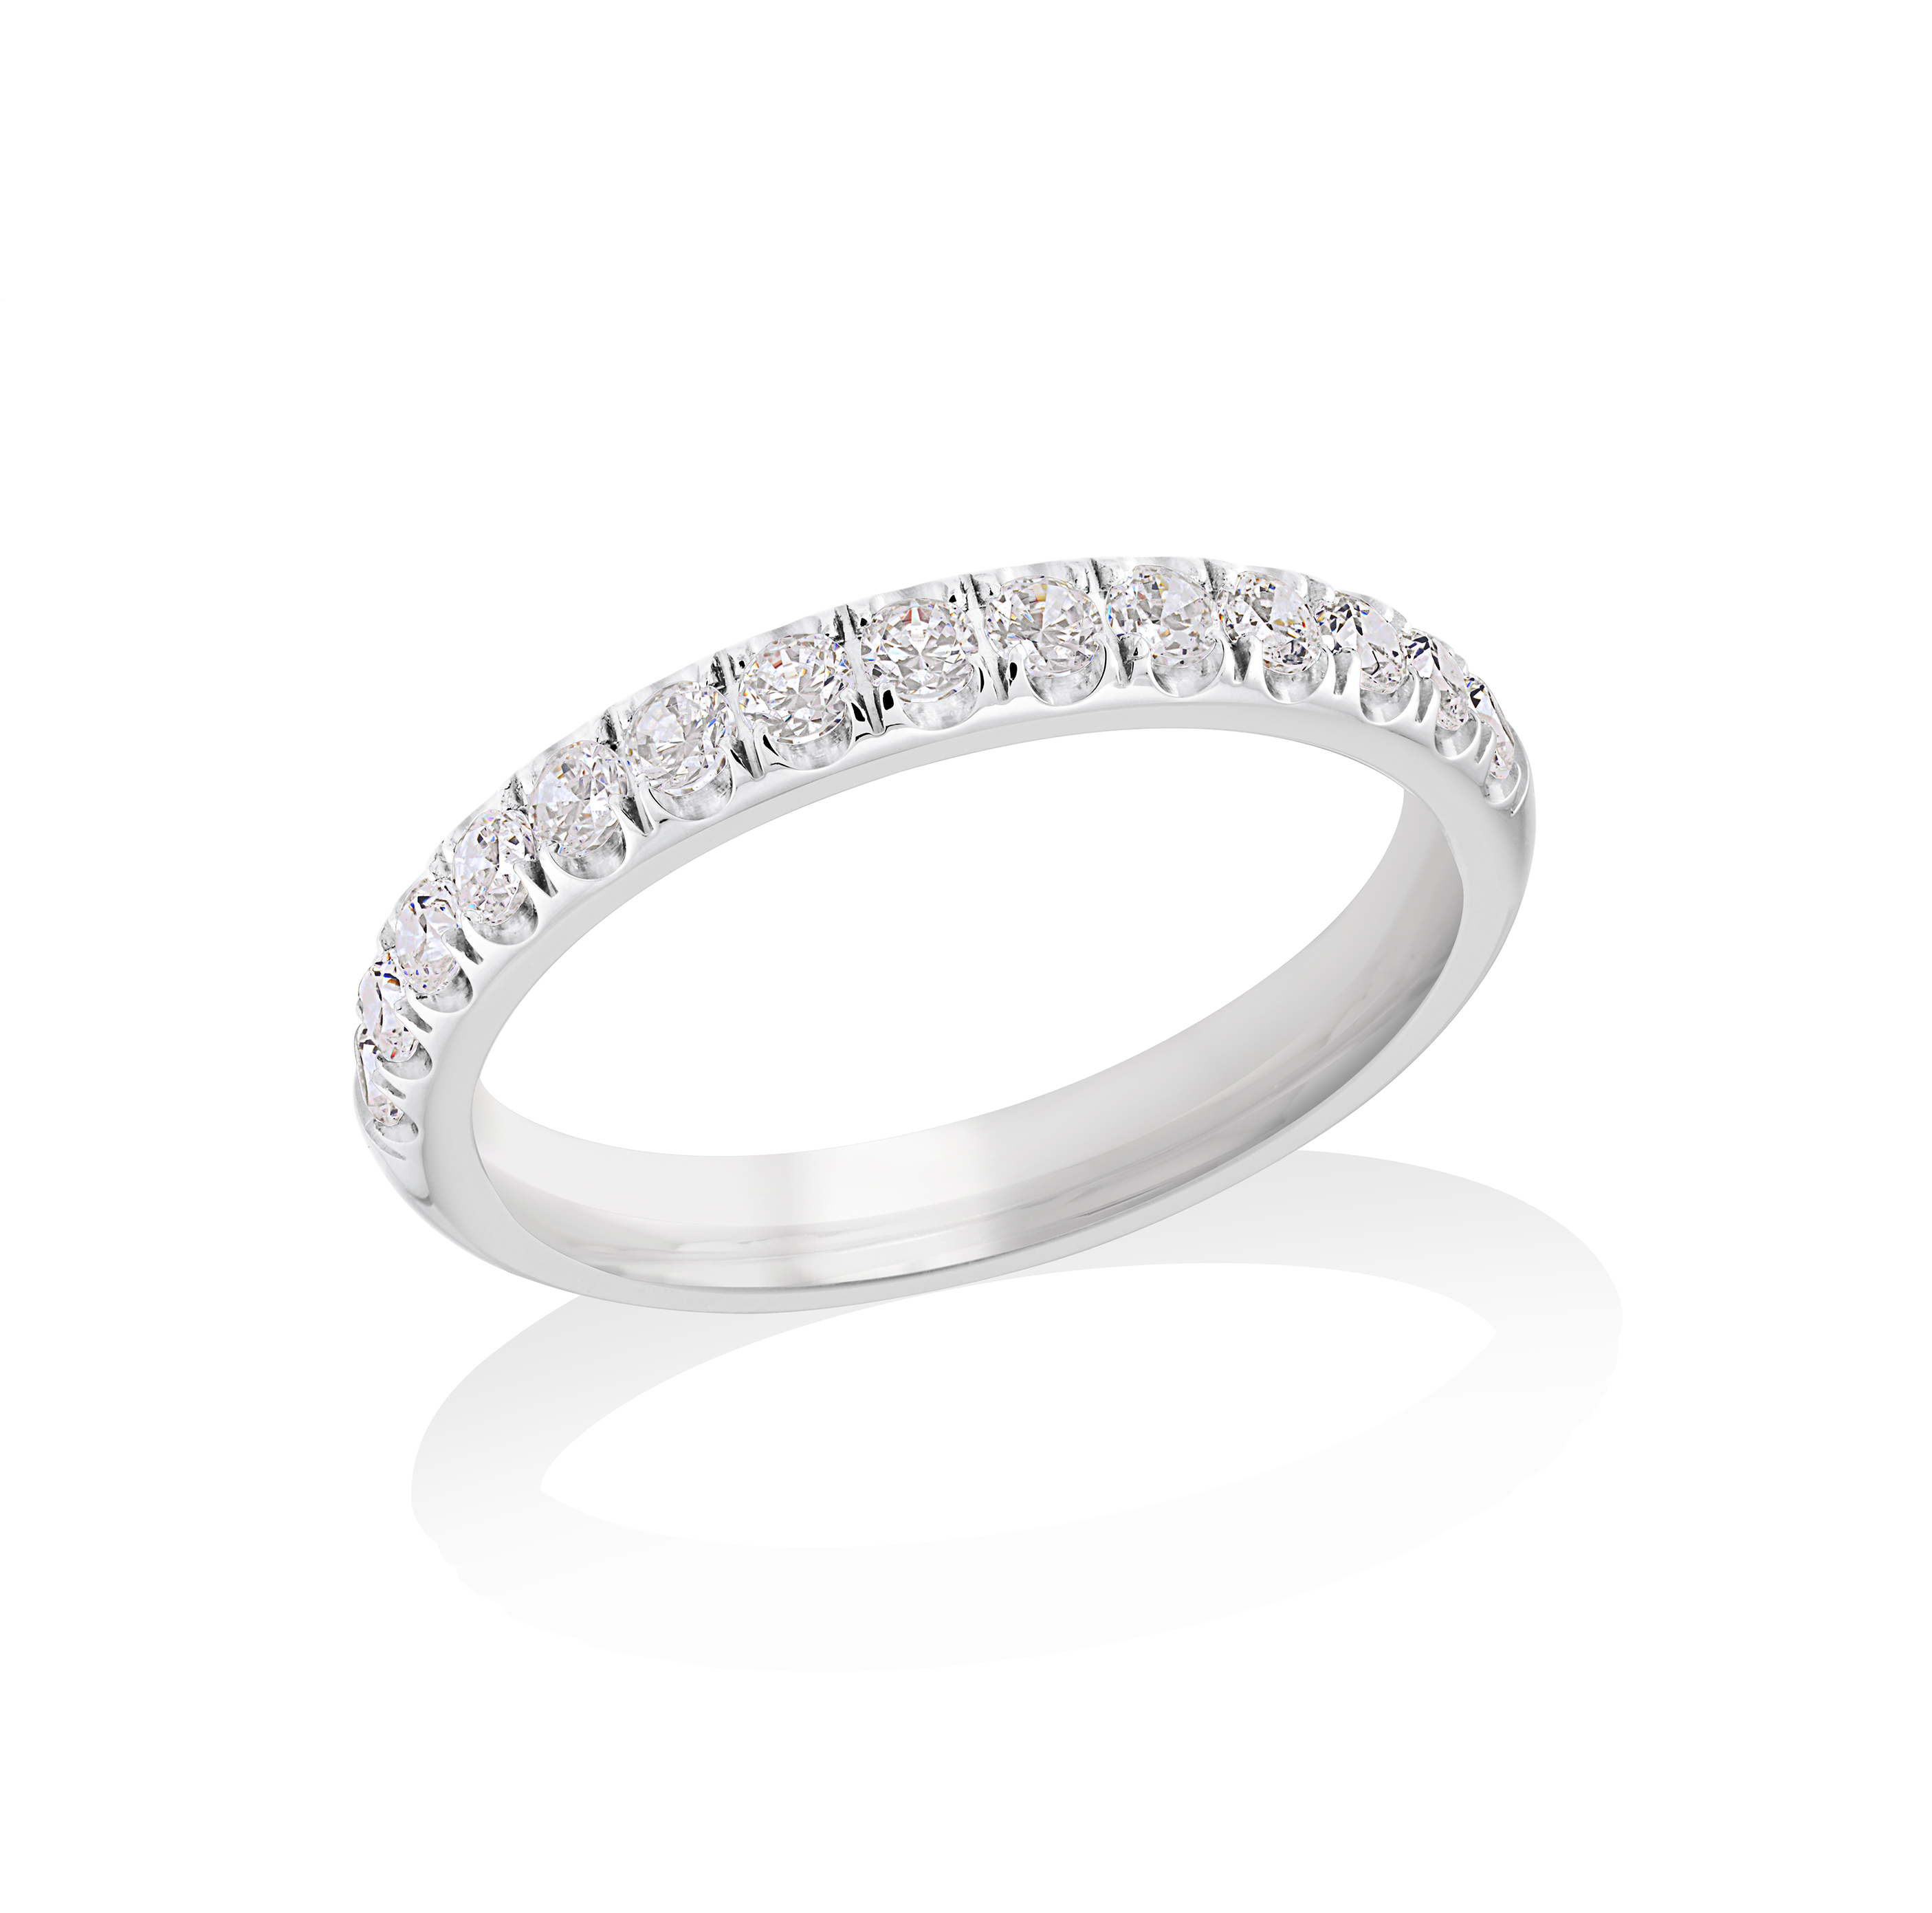 Half-eternity band for woman - Stainless steel & Cubic zirconia